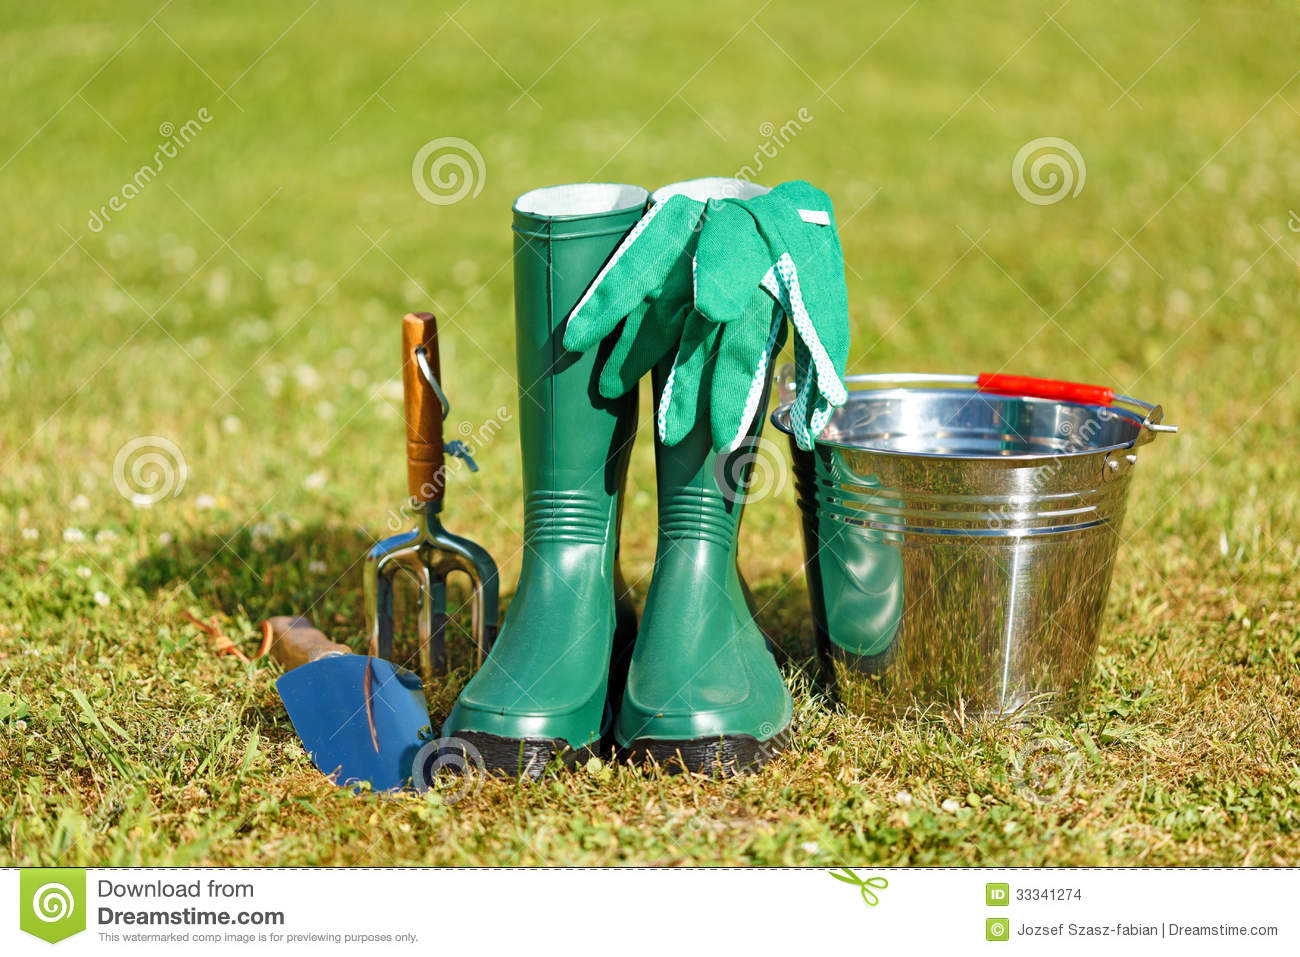 Gardening tools and equipment stock images image 33341274 for Tools and equipment in planting